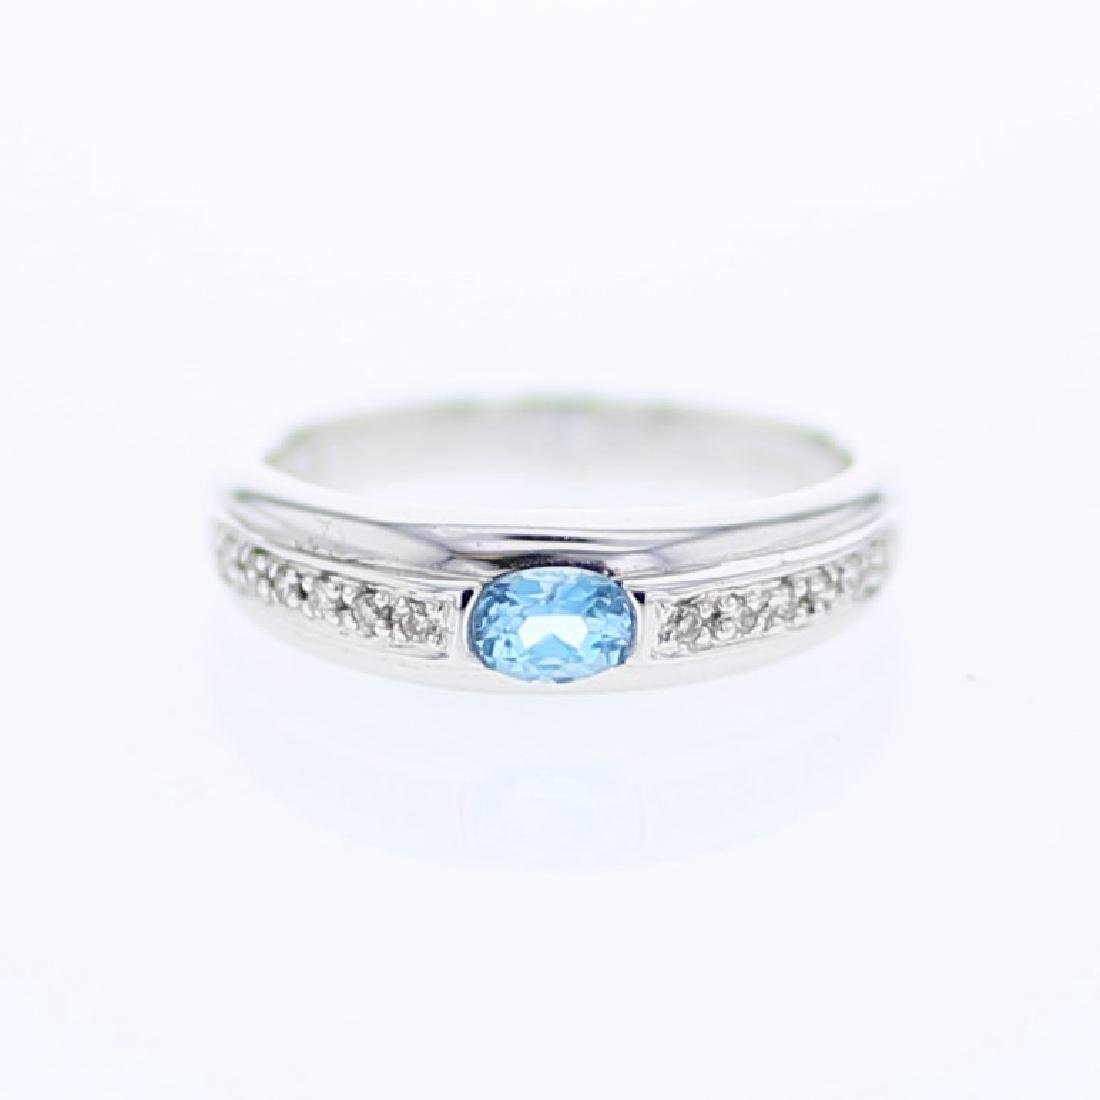 14KT White Gold 0.34ct Blue Topaz and Diamond Ring